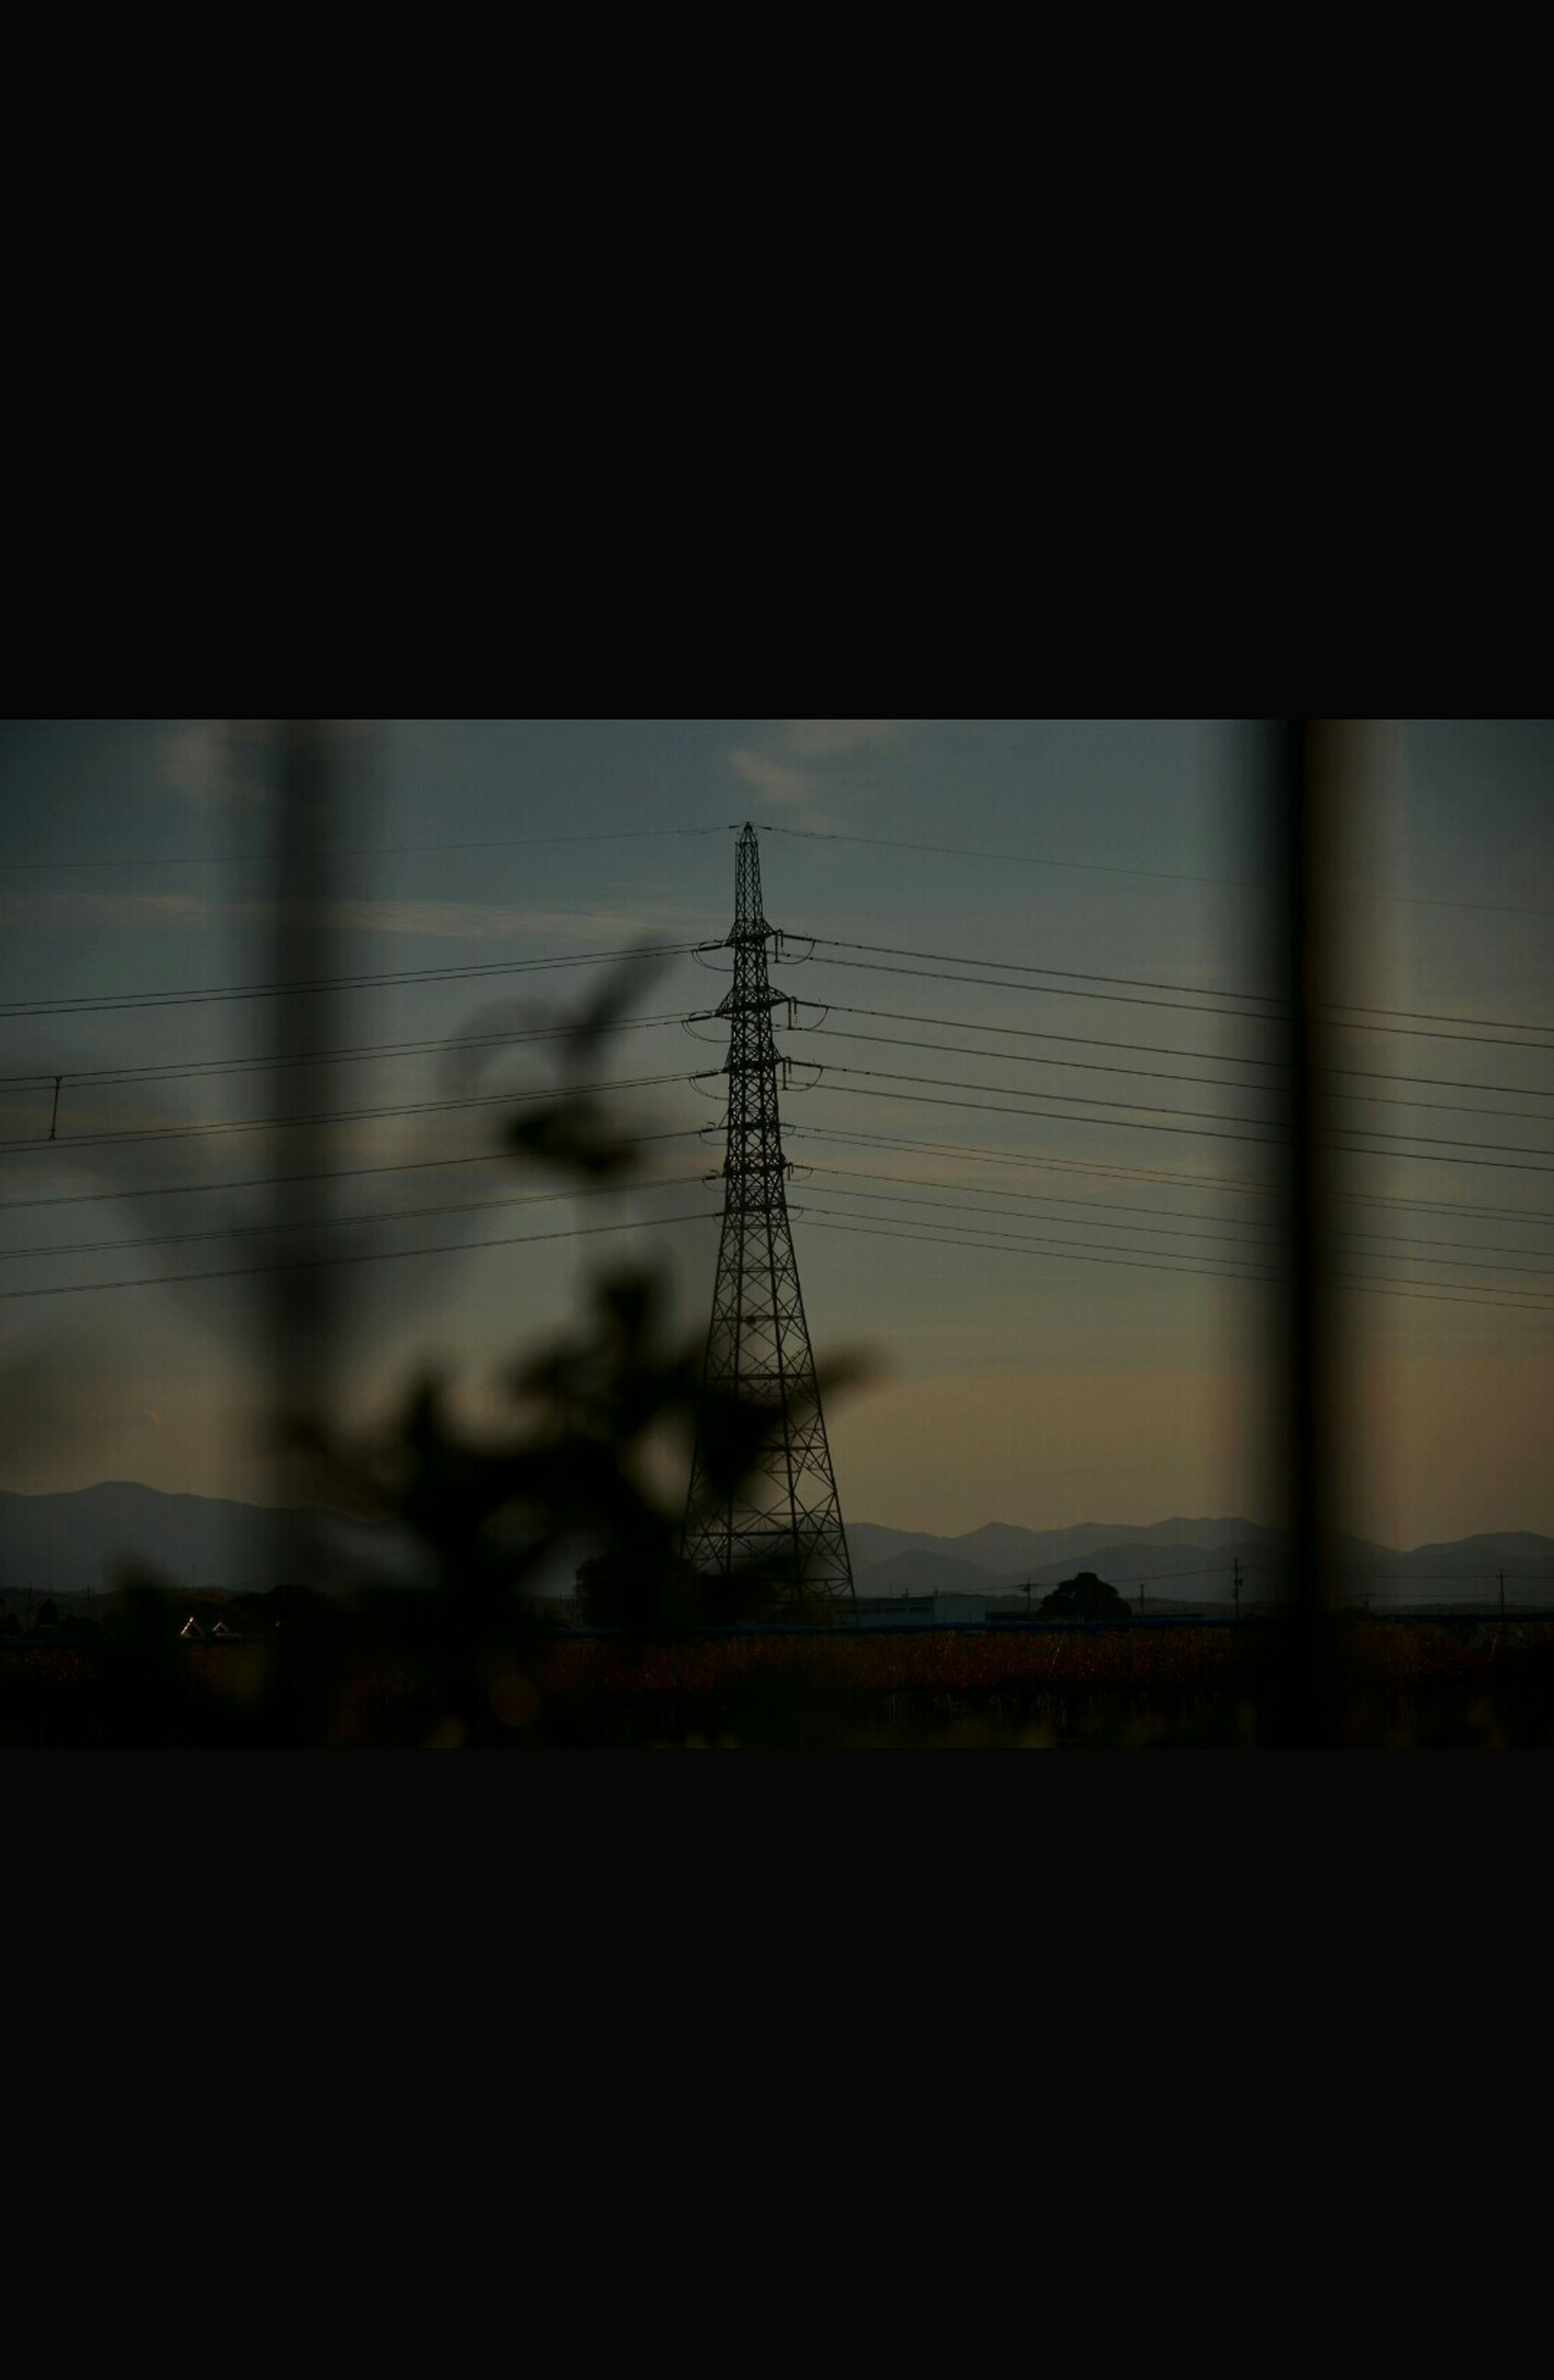 silhouette, sky, built structure, electricity pylon, power line, electricity, fuel and power generation, sunset, water, power supply, connection, indoors, dusk, architecture, technology, nature, no people, dark, window